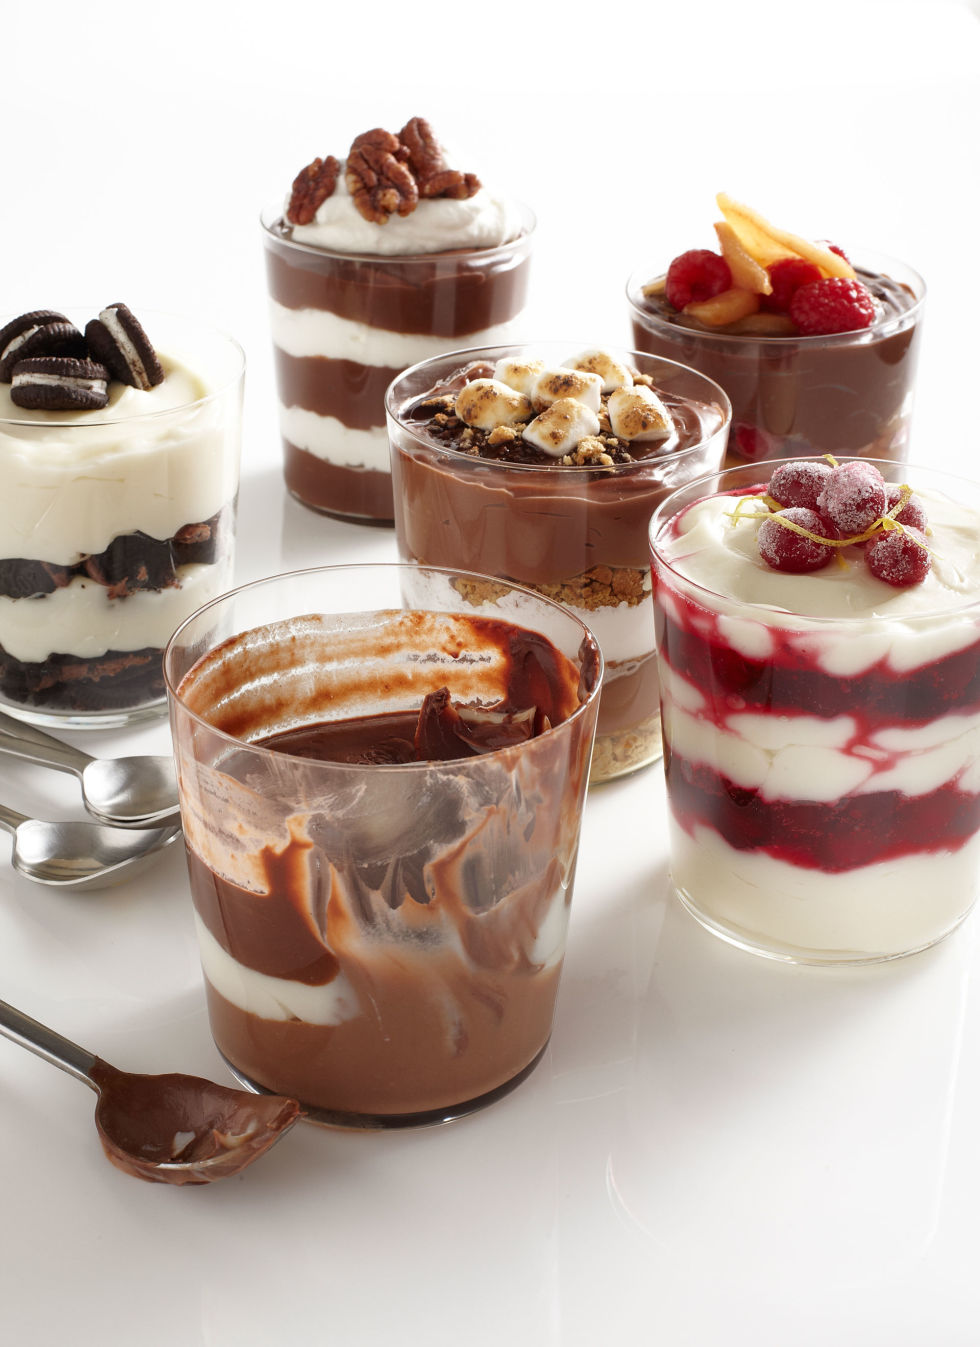 Chocolate Pudding Recipes - Homemade Chocolate Pudding Desserts